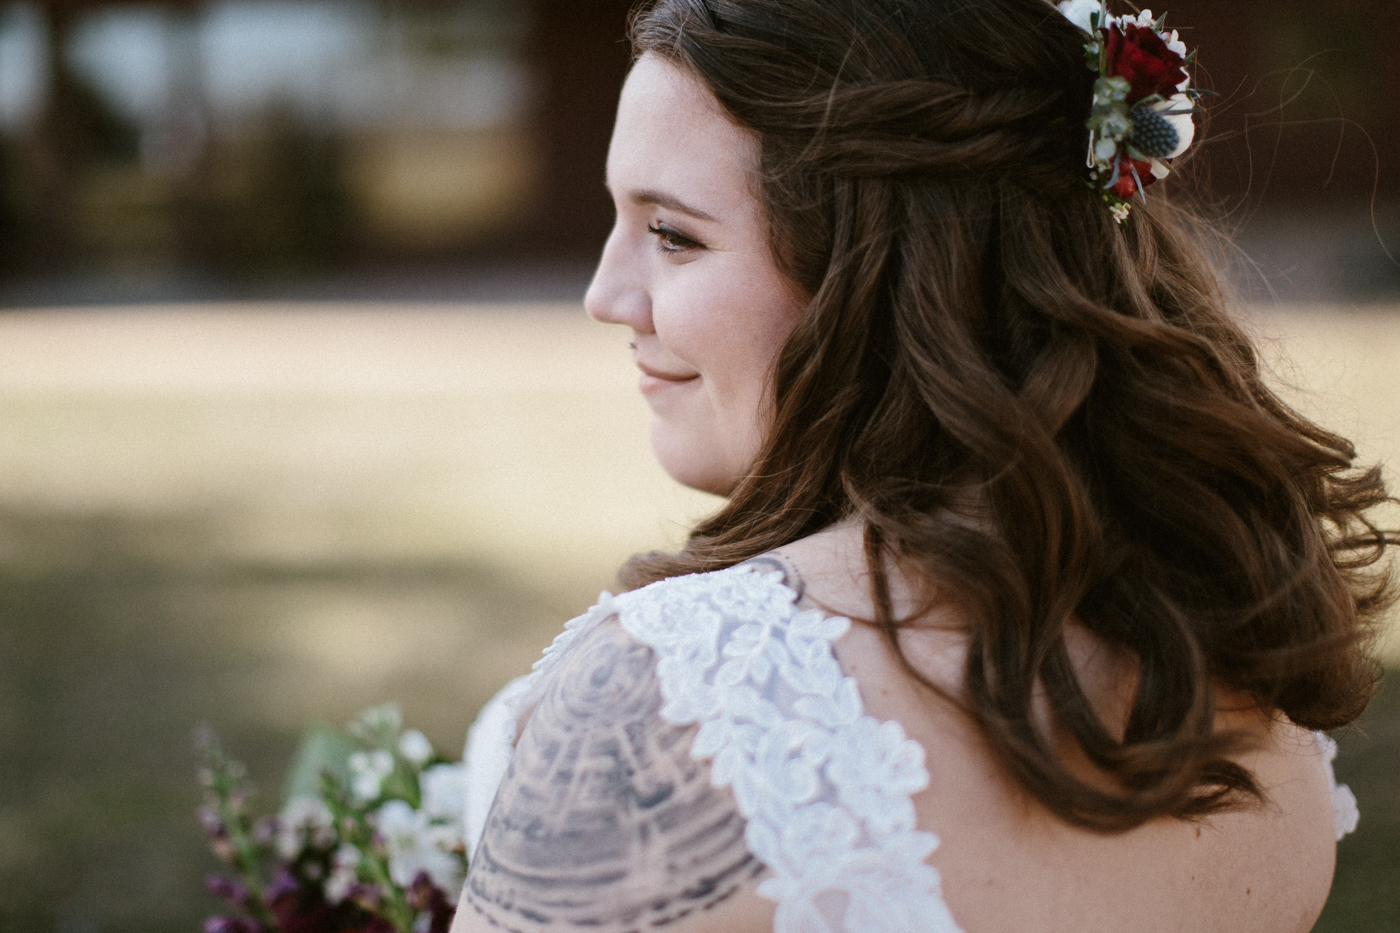 Matt&Amanda_SiouxFalls_DesMoines_Wedding_Photographer_06.jpg